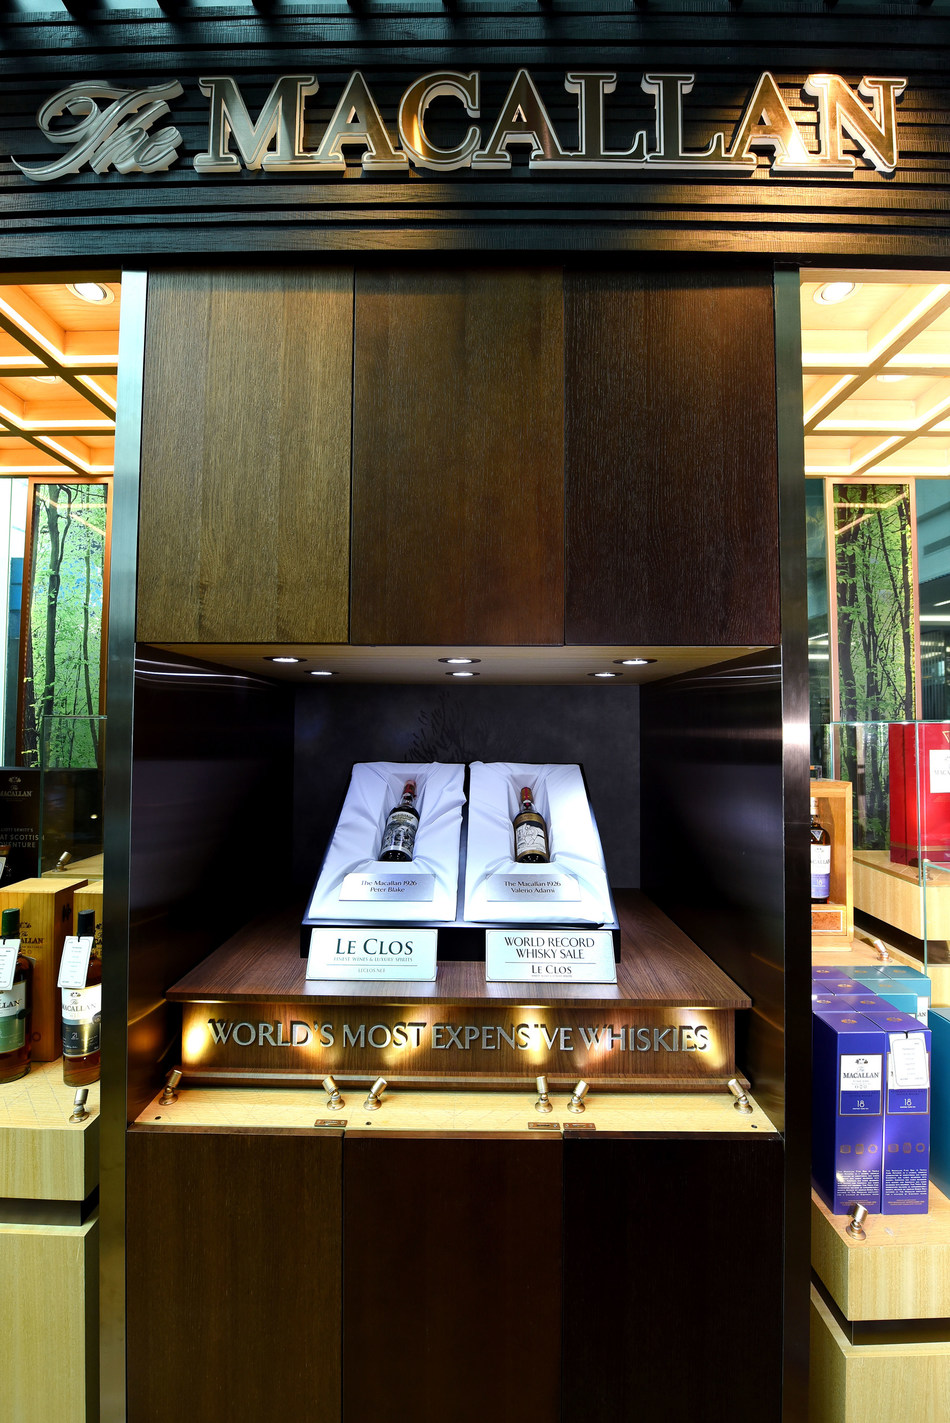 The Macallan 1926 Peter Blake and Valerio Adami bottles on display in Le Clos at Dubai Airport (PRNewsfoto/Le Clos)